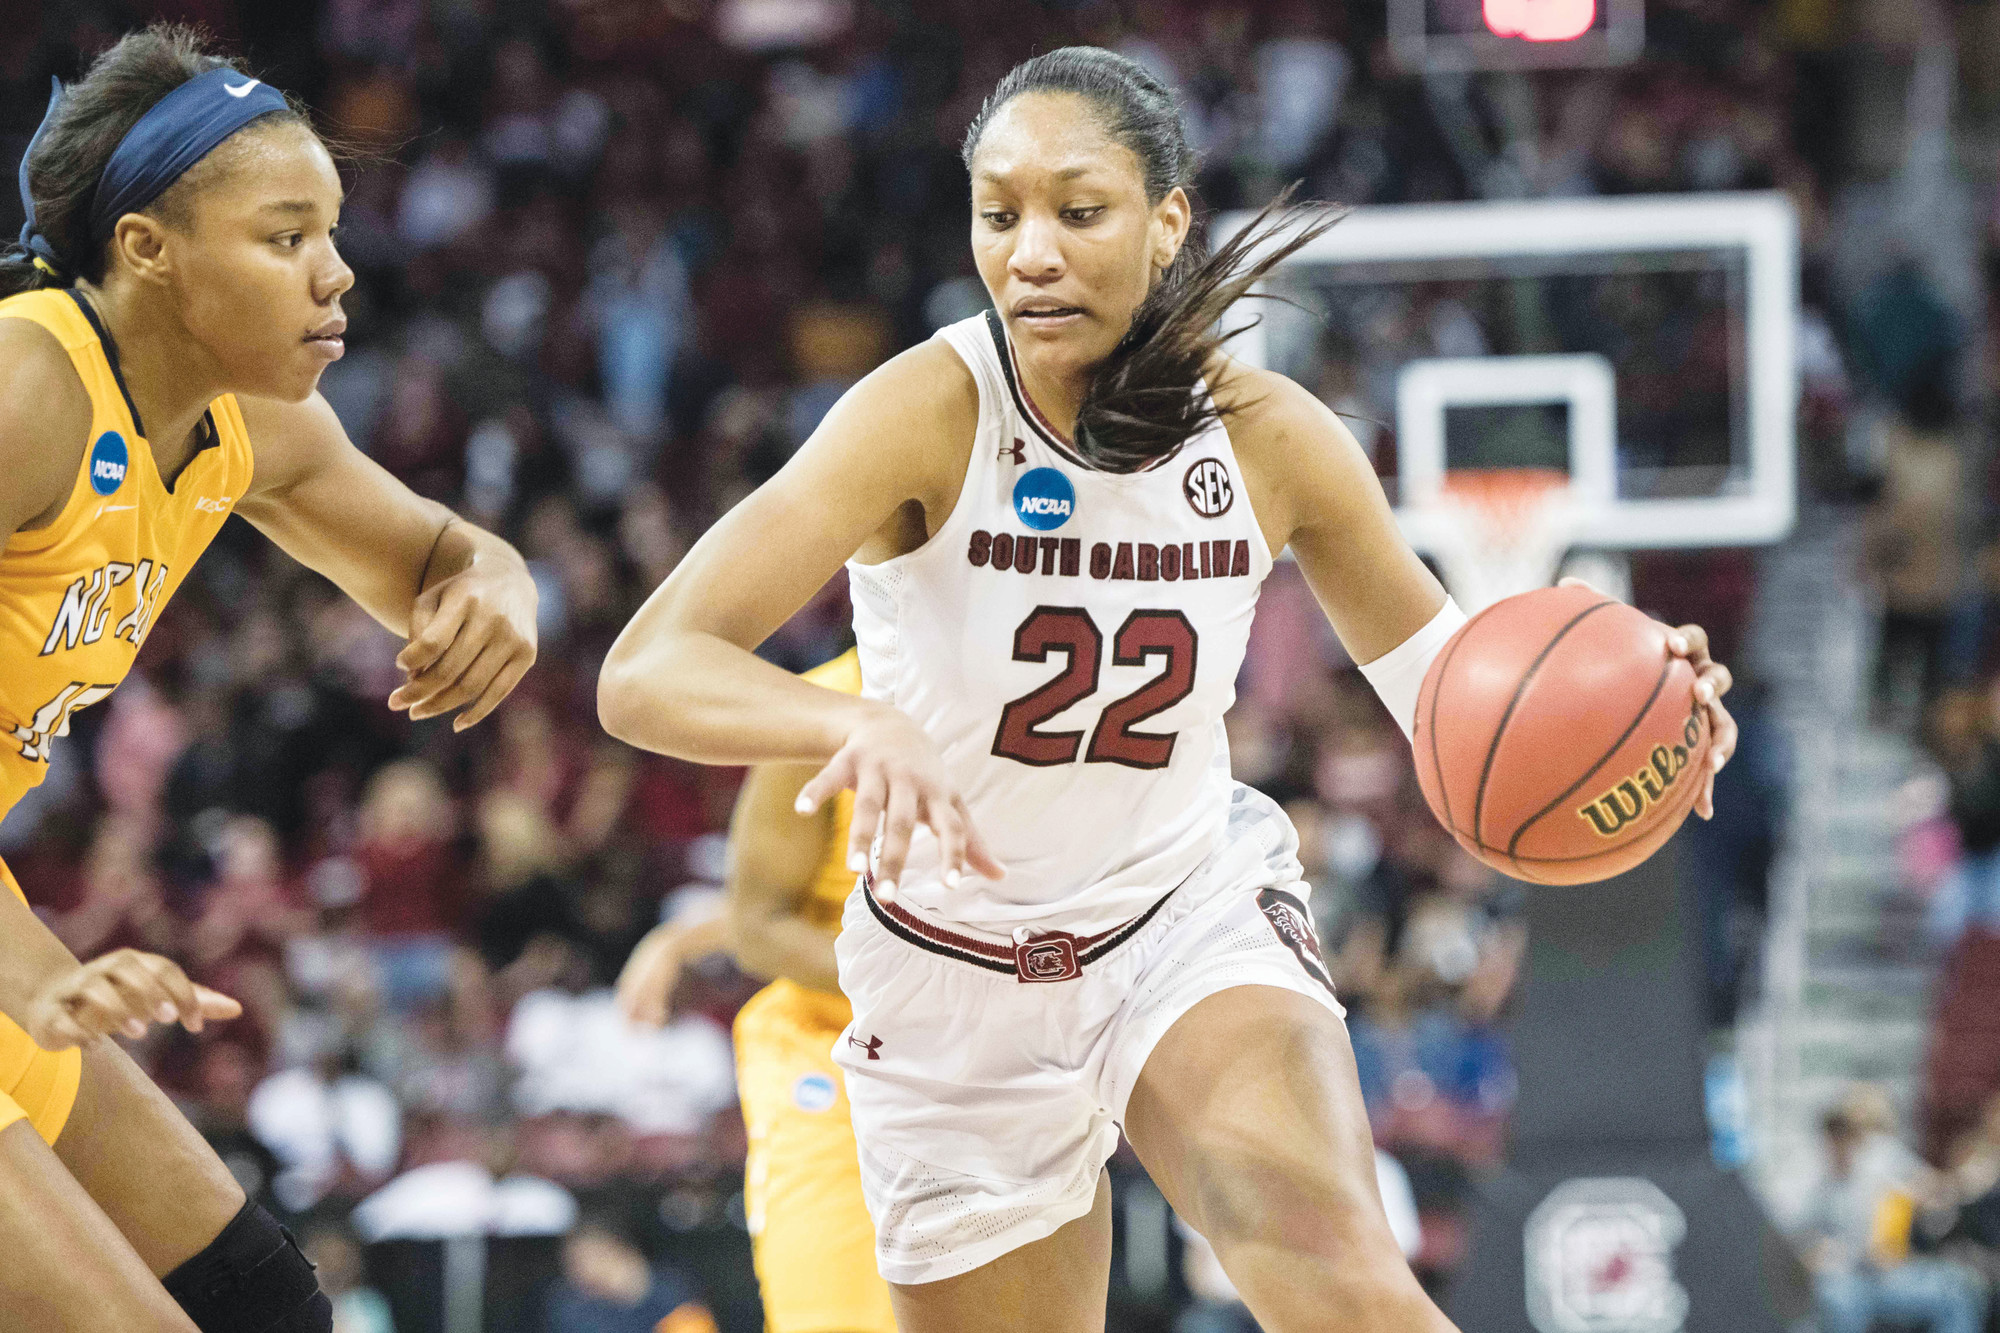 South Carolina forward A'ja Wilson, right,  drives to the hoop against North Carolina A&T forward Alexus Lessears, left, during the second half of a game in the first-round of the NCAA women's college basketball tournament, Friday, March 16, 2018, in Columbia, S.C. South Carolina defeated North Carolina A&T 63-52. (AP Photo/Sean Rayford)